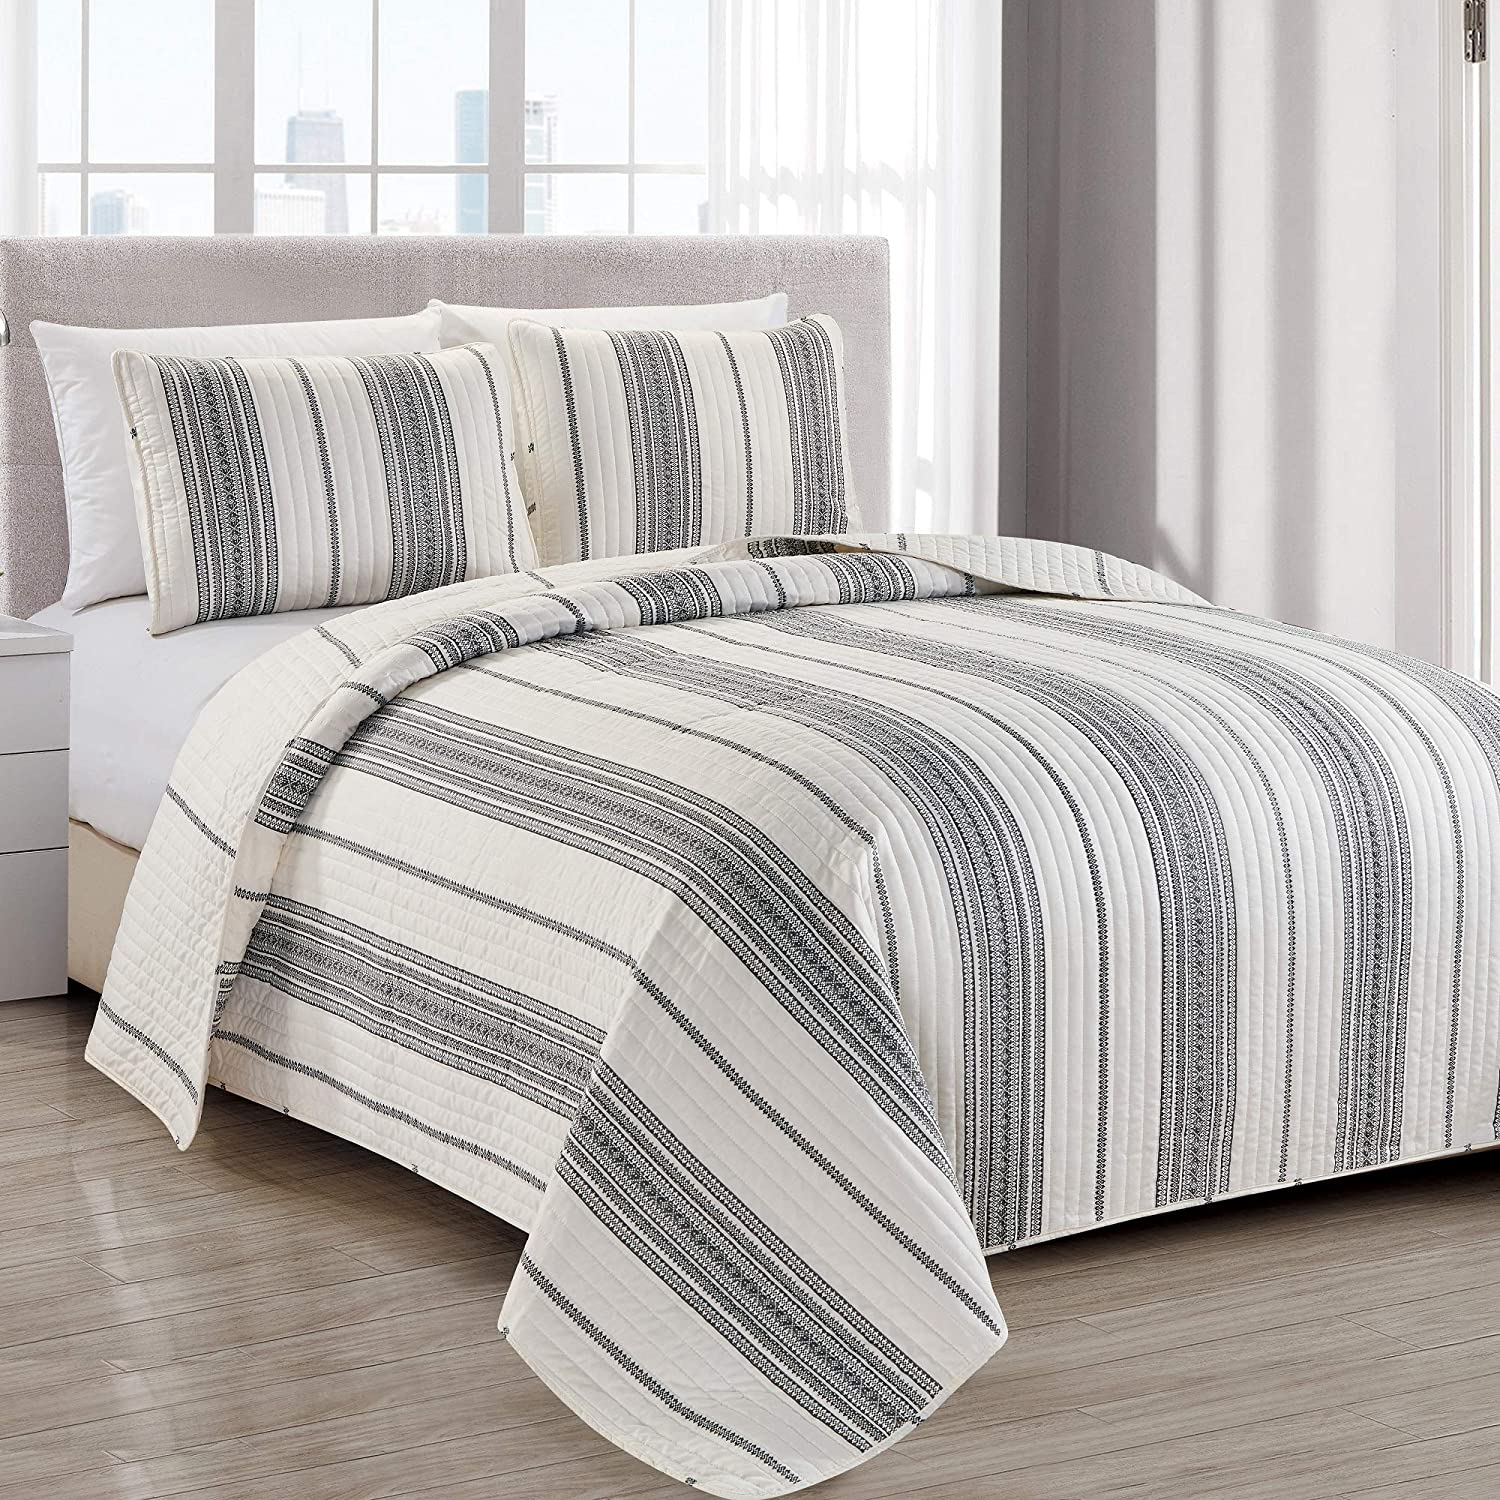 Modern Bedspread Full/Queen Size Quilt with 2 Shams. Modern 3-Piece Reversible All Season Quilt Set. Black and White Quilt Coverlet Bed Set. Wesley Collection.